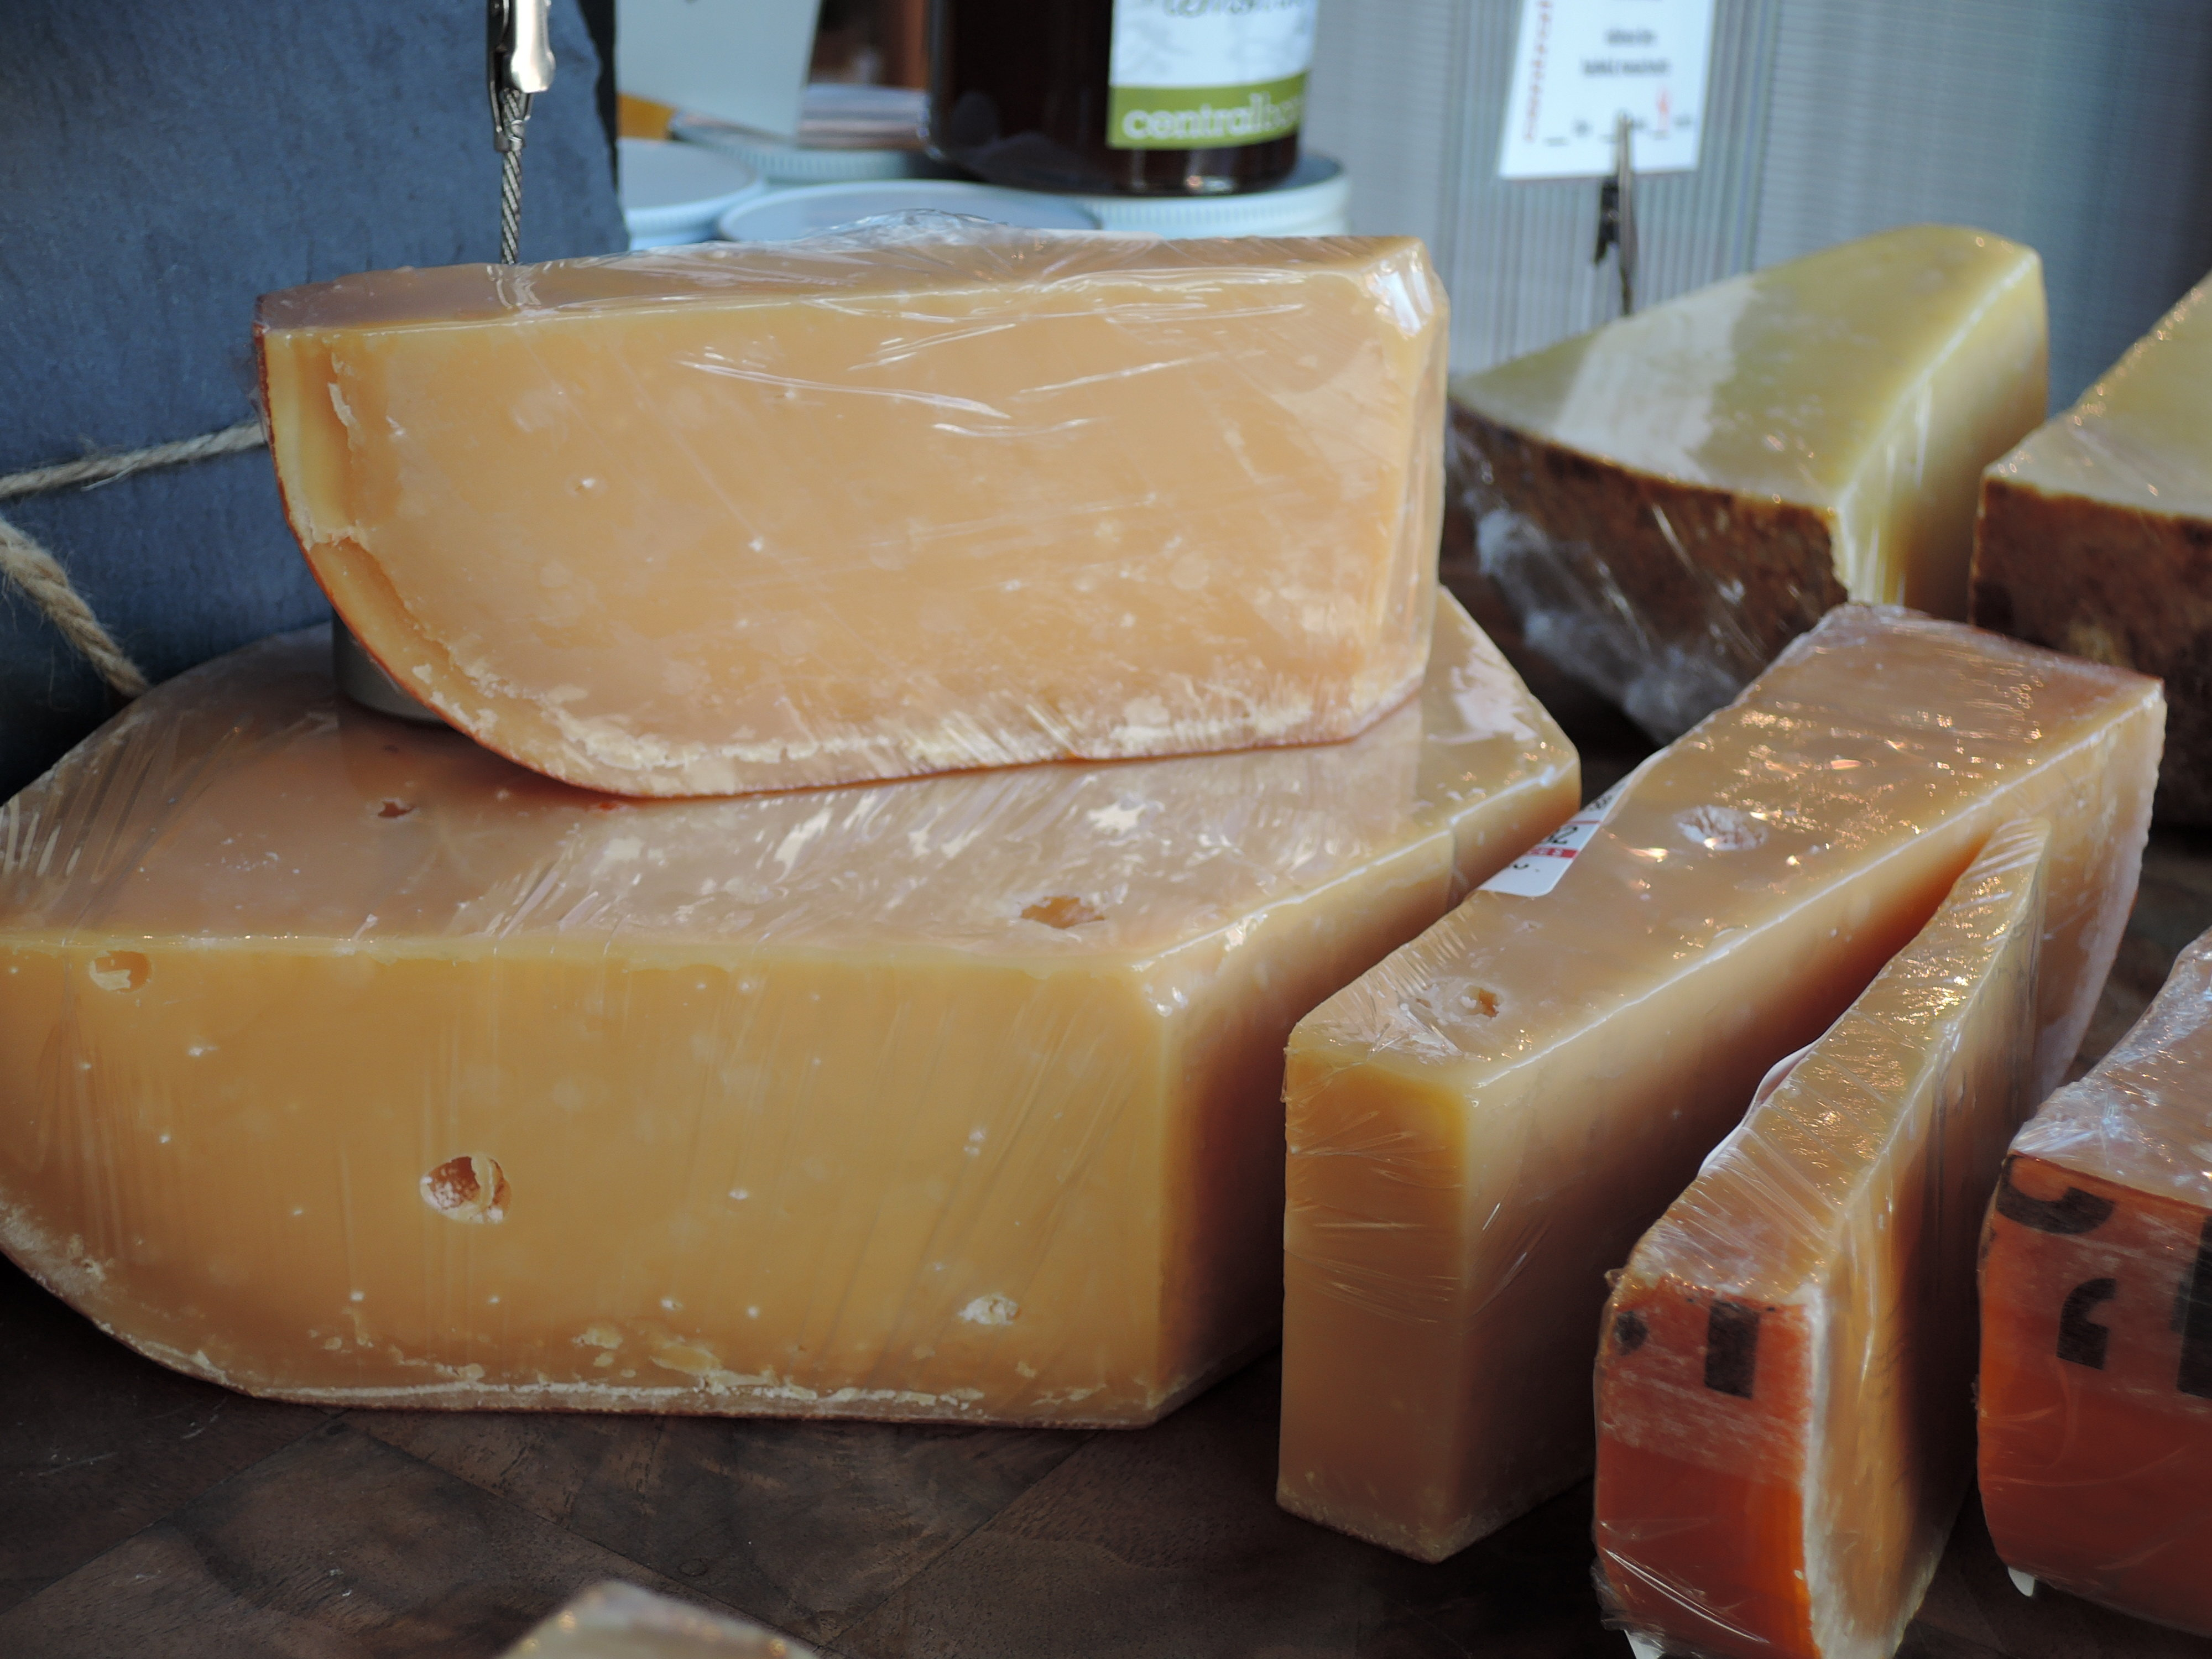 A sample photo of cheese taken by the Nikon Coolpix P340.